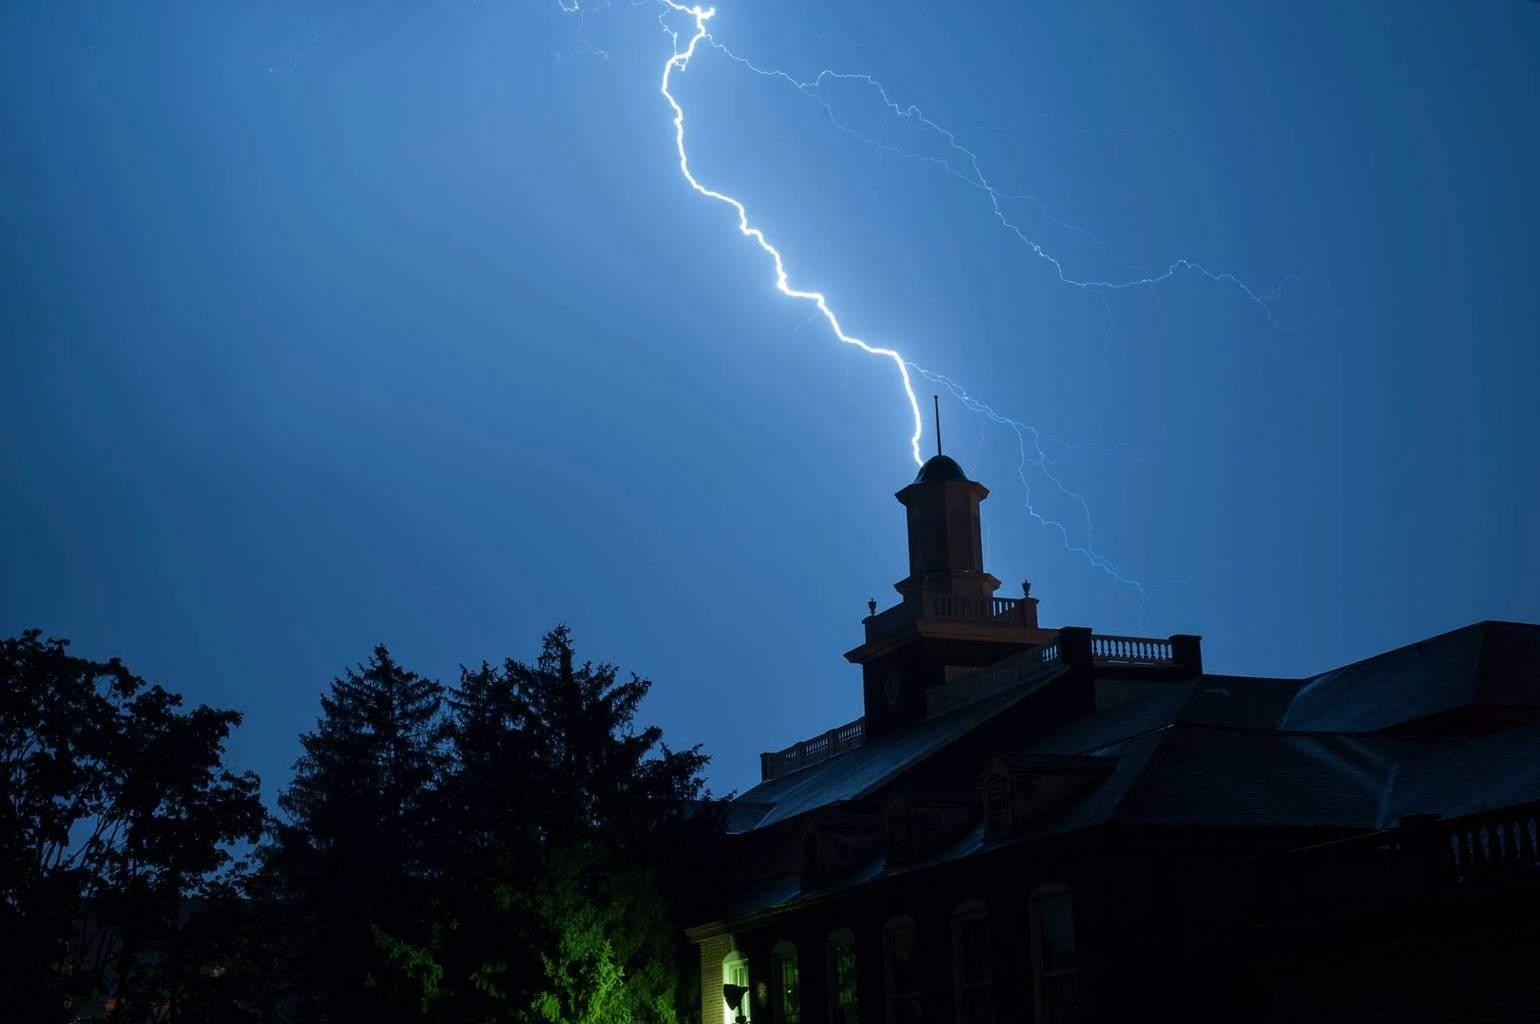 One of the most intense lightning storm's I have seen in awhile in my hometown. Was able to capture a couple from the storm.